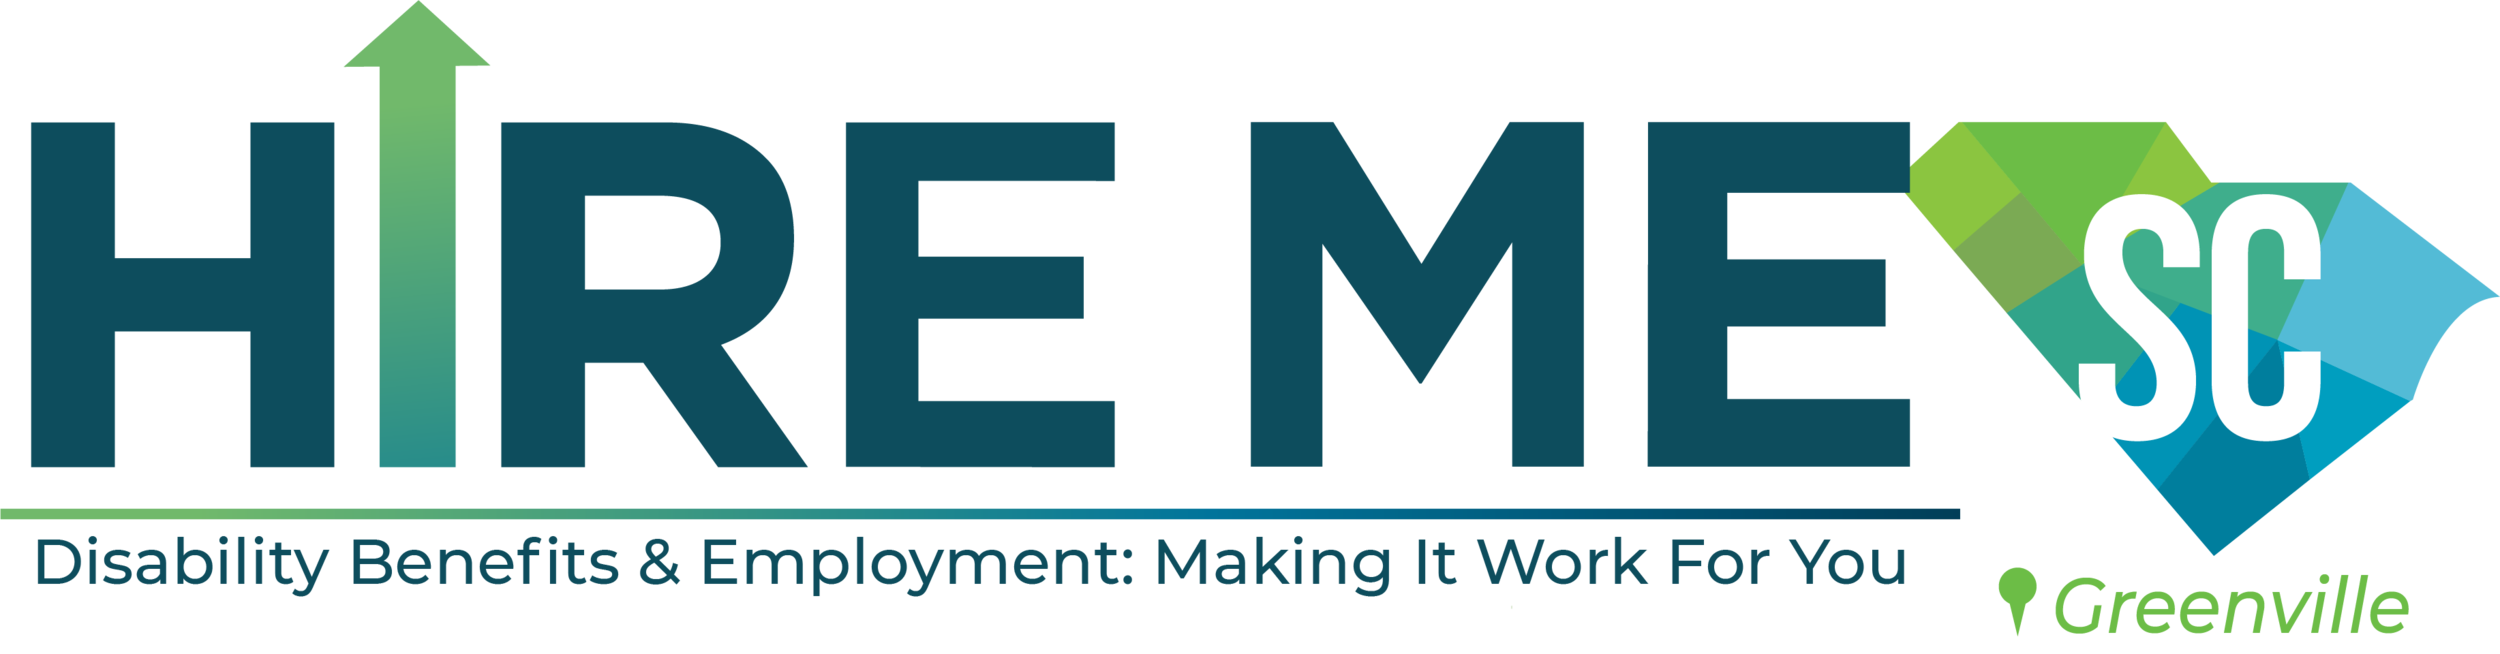 """[image: """"Hire Me"""" in dark blue with the letter """"I"""" an arrow pointing upward. Below this, it says """"Disability Benefits & Employment: Making it Work for You!"""" Next to """"Hire Me"""" is an outline of the state of SC with an """"SC"""" inside of it. Below it is a pin drop and """"Greenville"""" in green letters.]"""